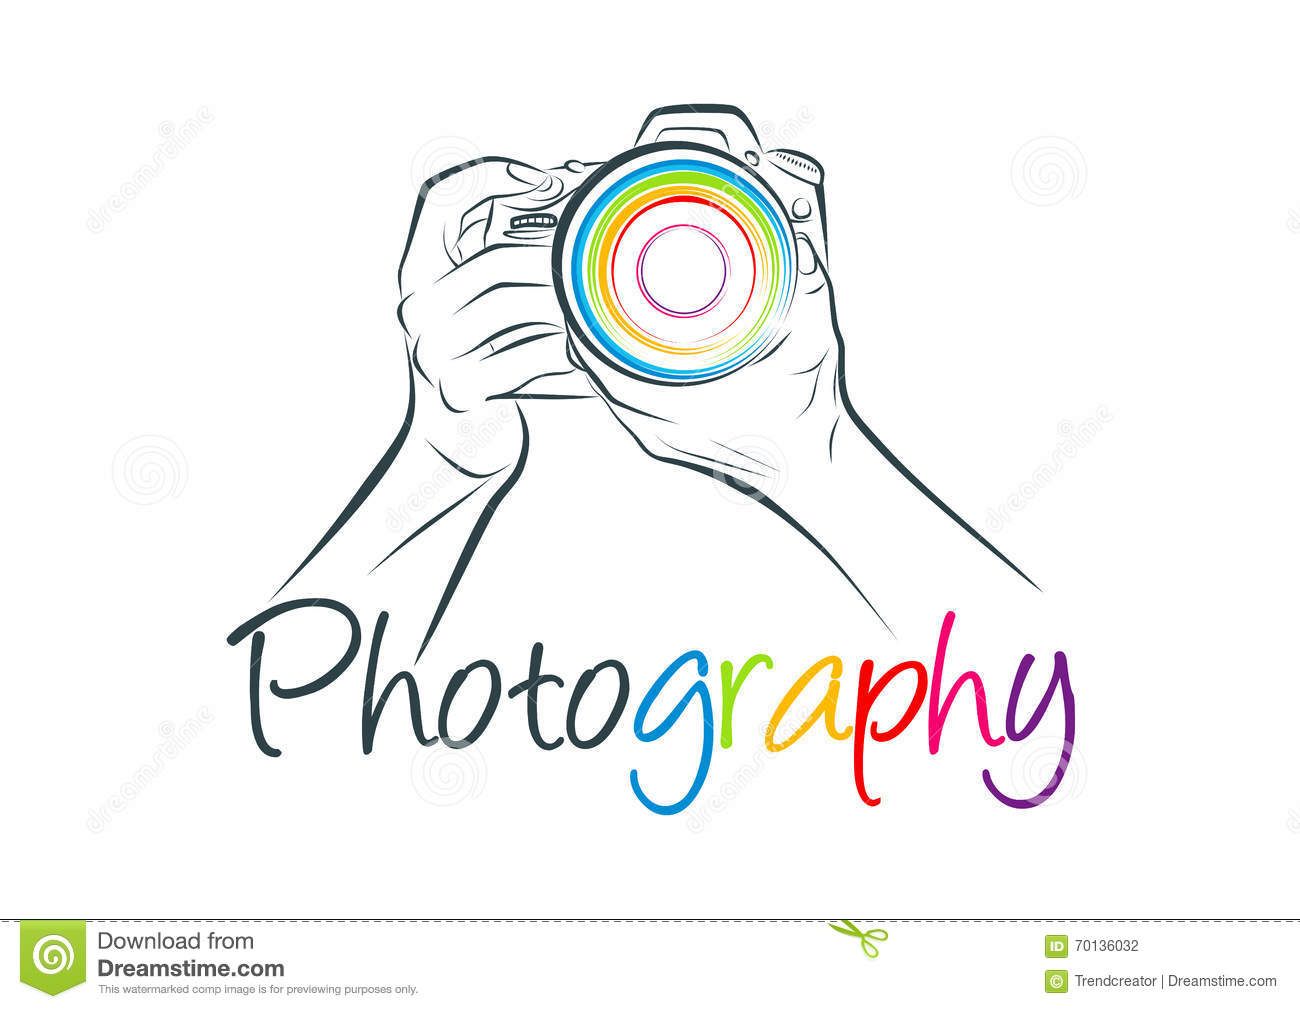 Camera logo vector free download fieldstation camera buycottarizona